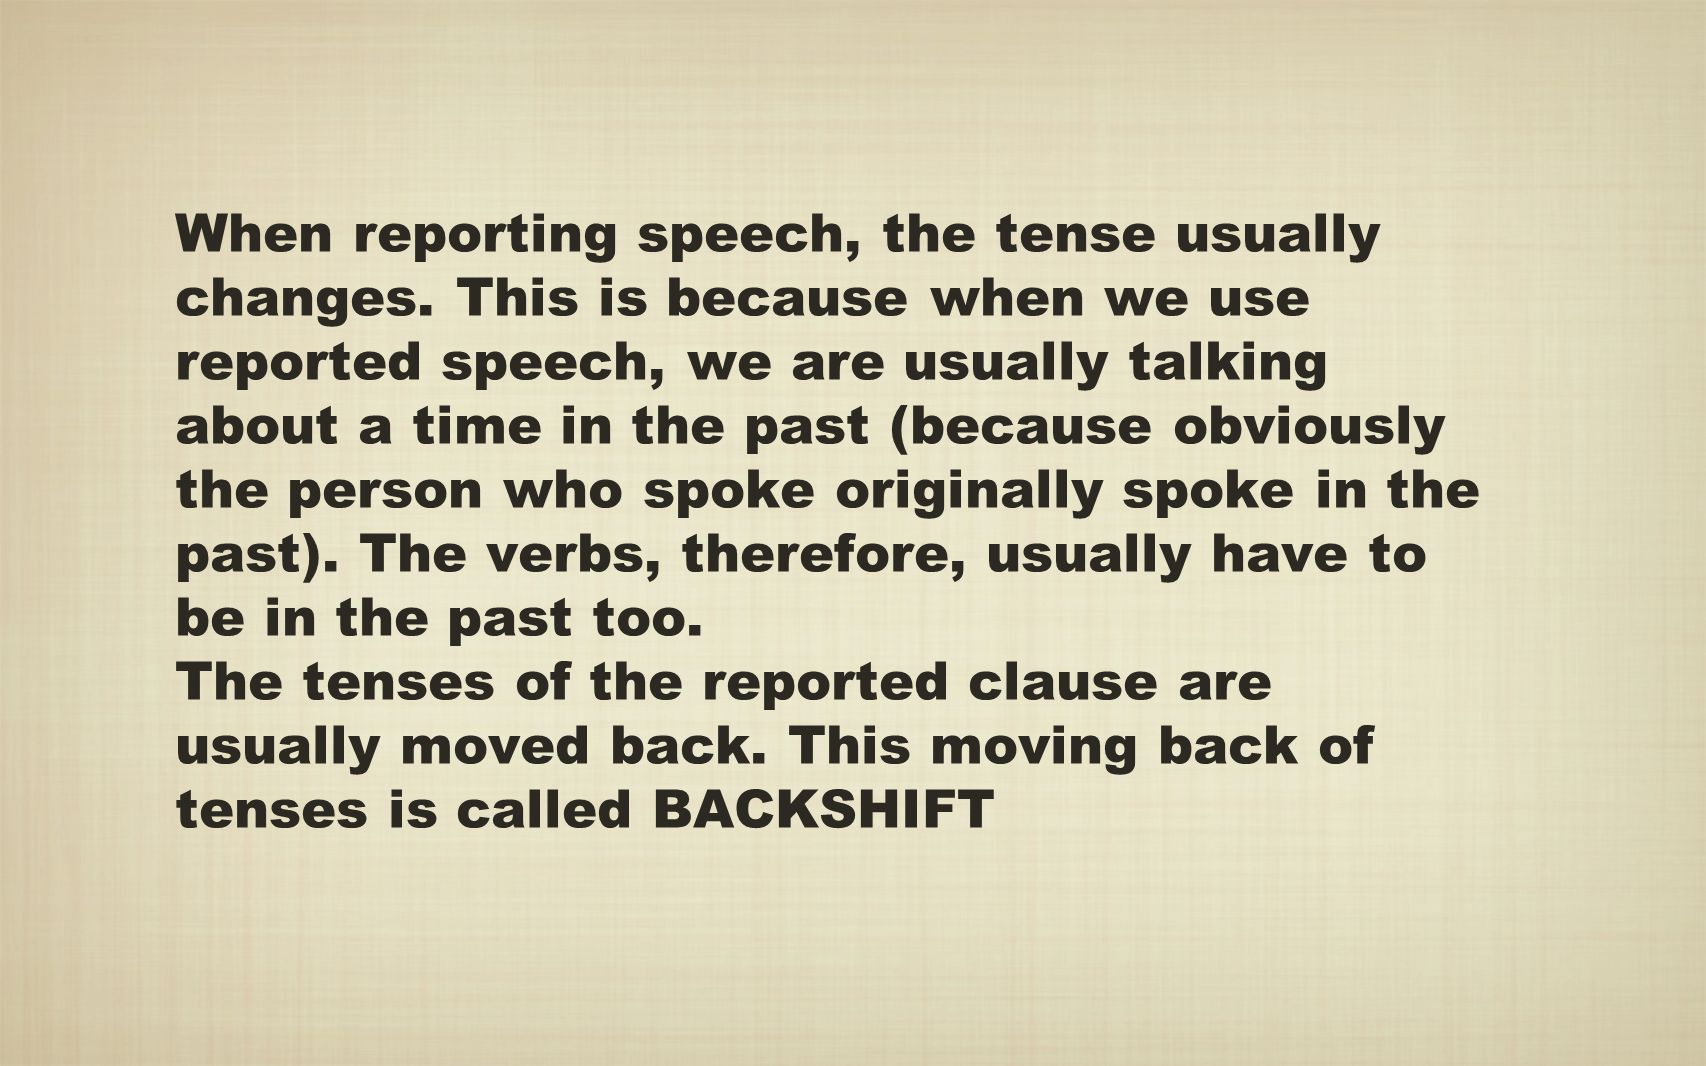 When reporting speech, the tense usually changes